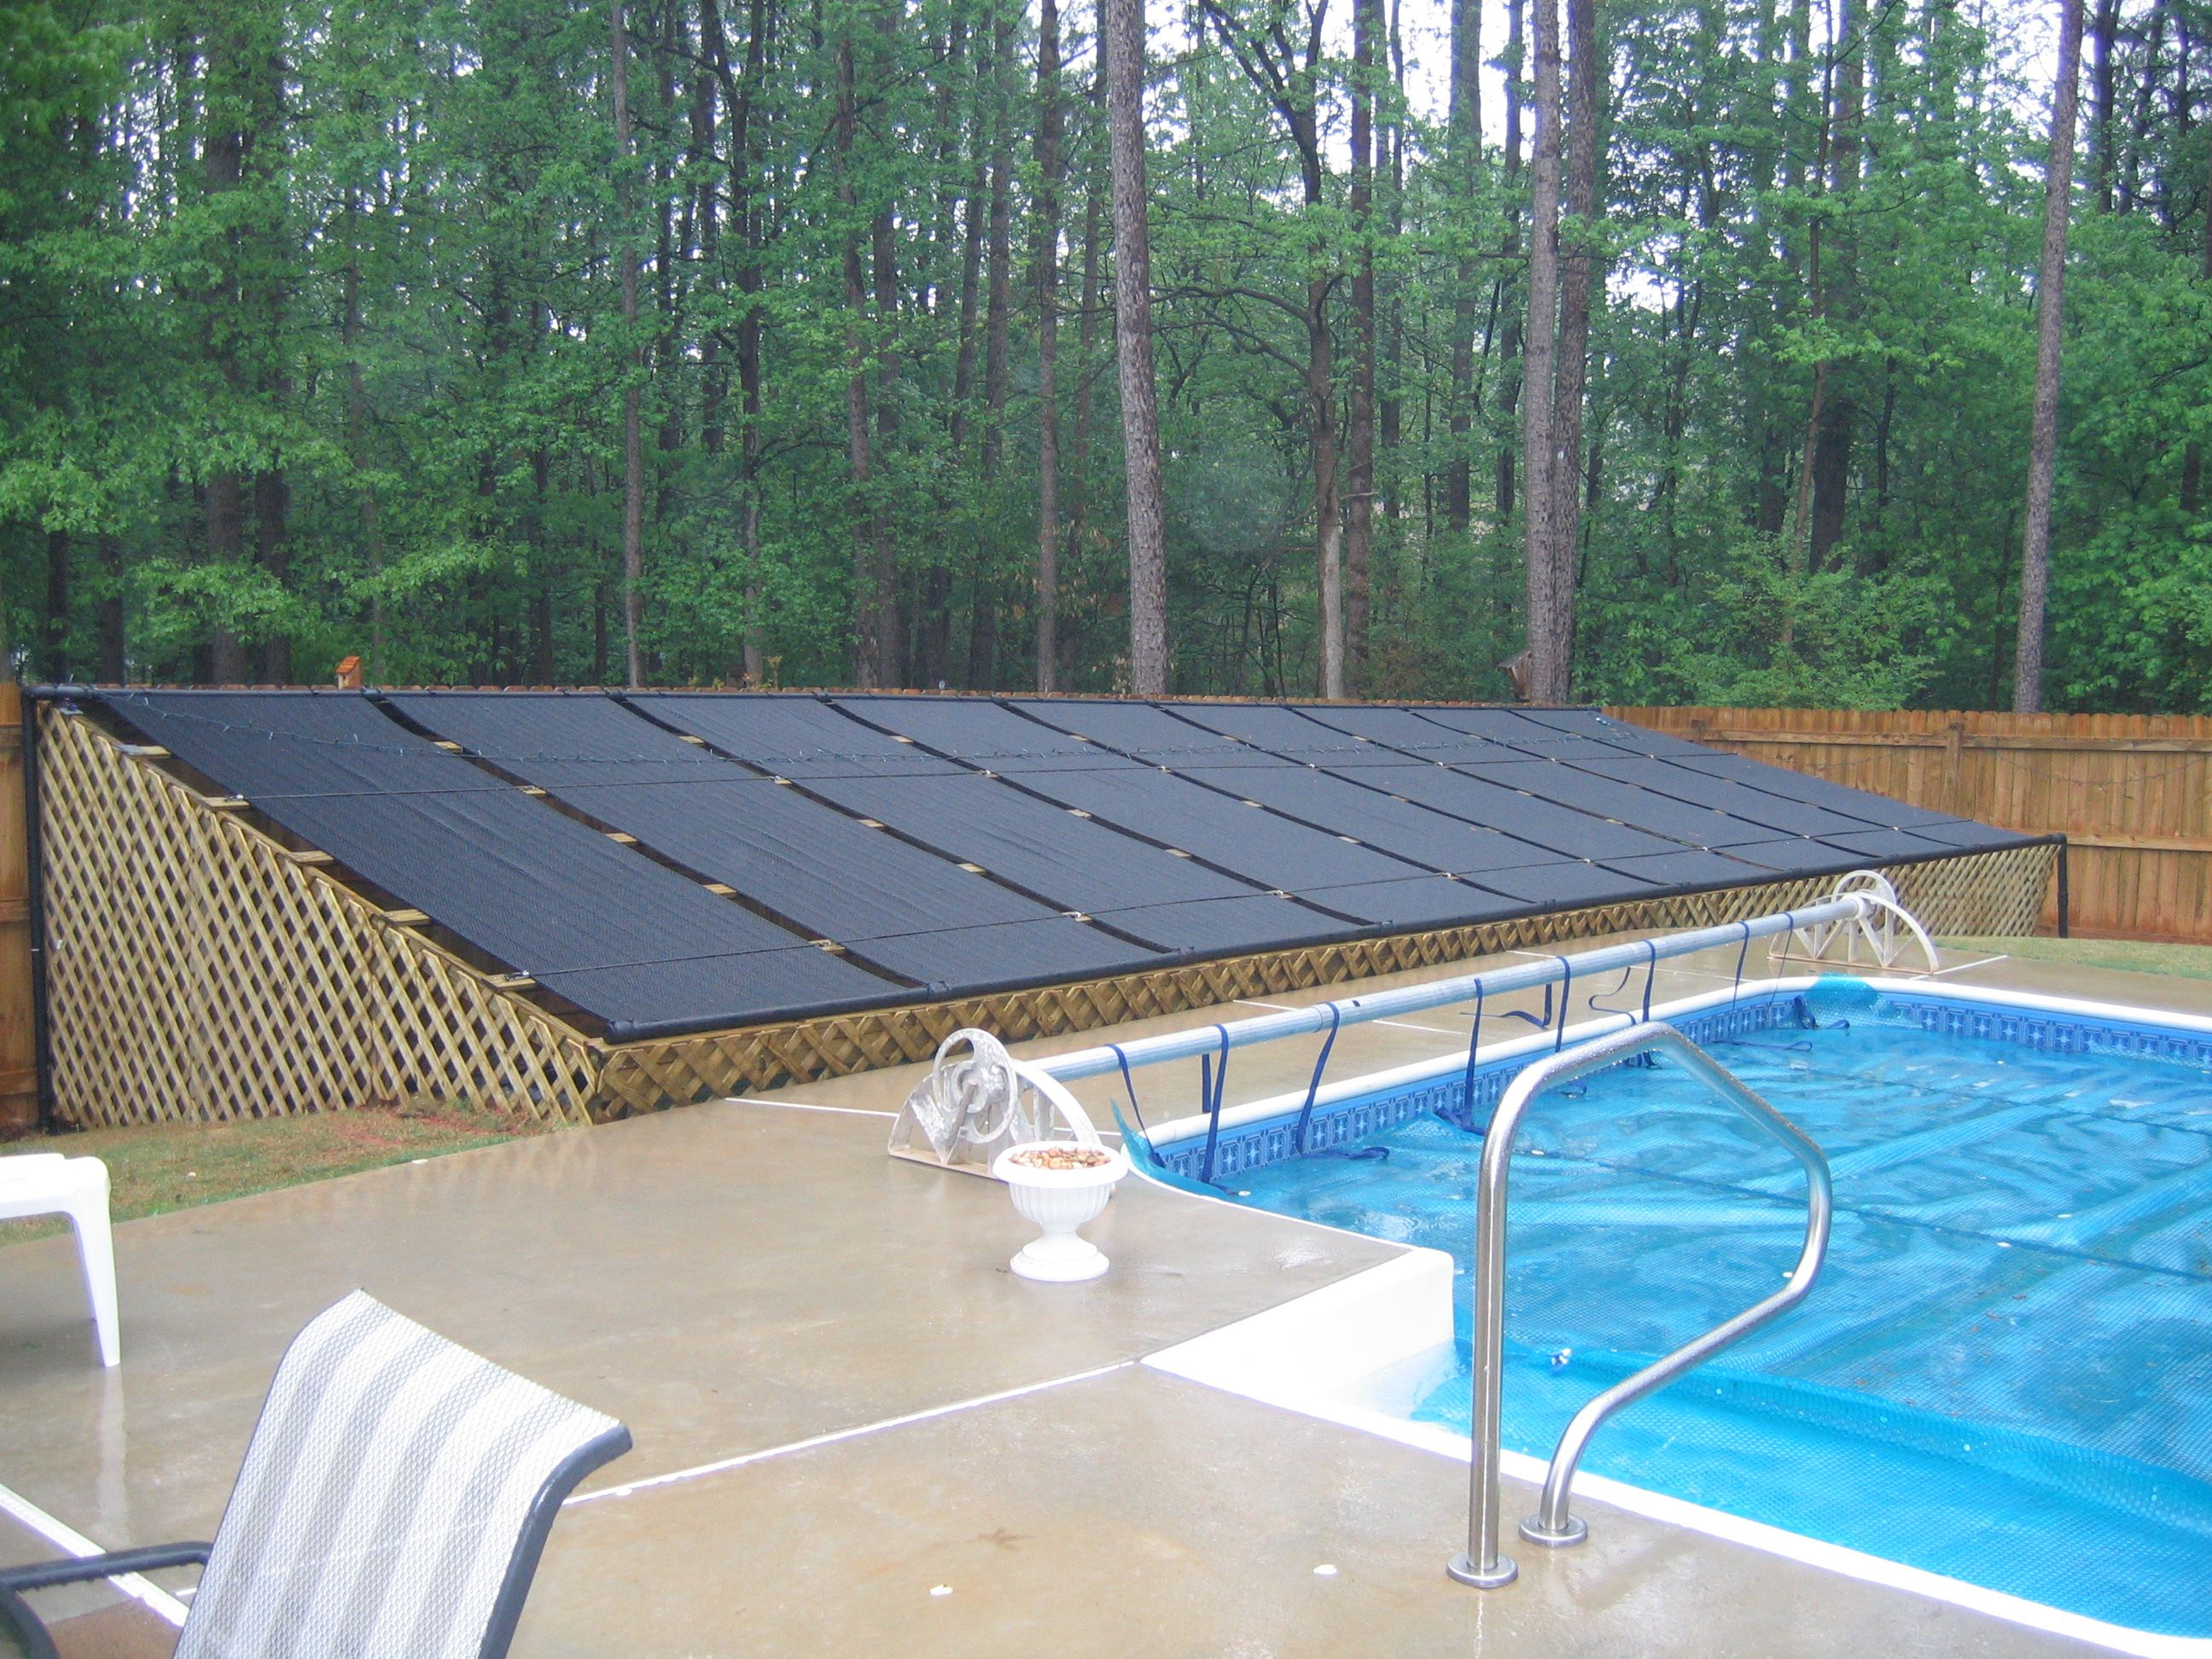 Solarheizung Pool Youtube Build Your Own Solar Pool Heater For Under 100 Pool Heaters